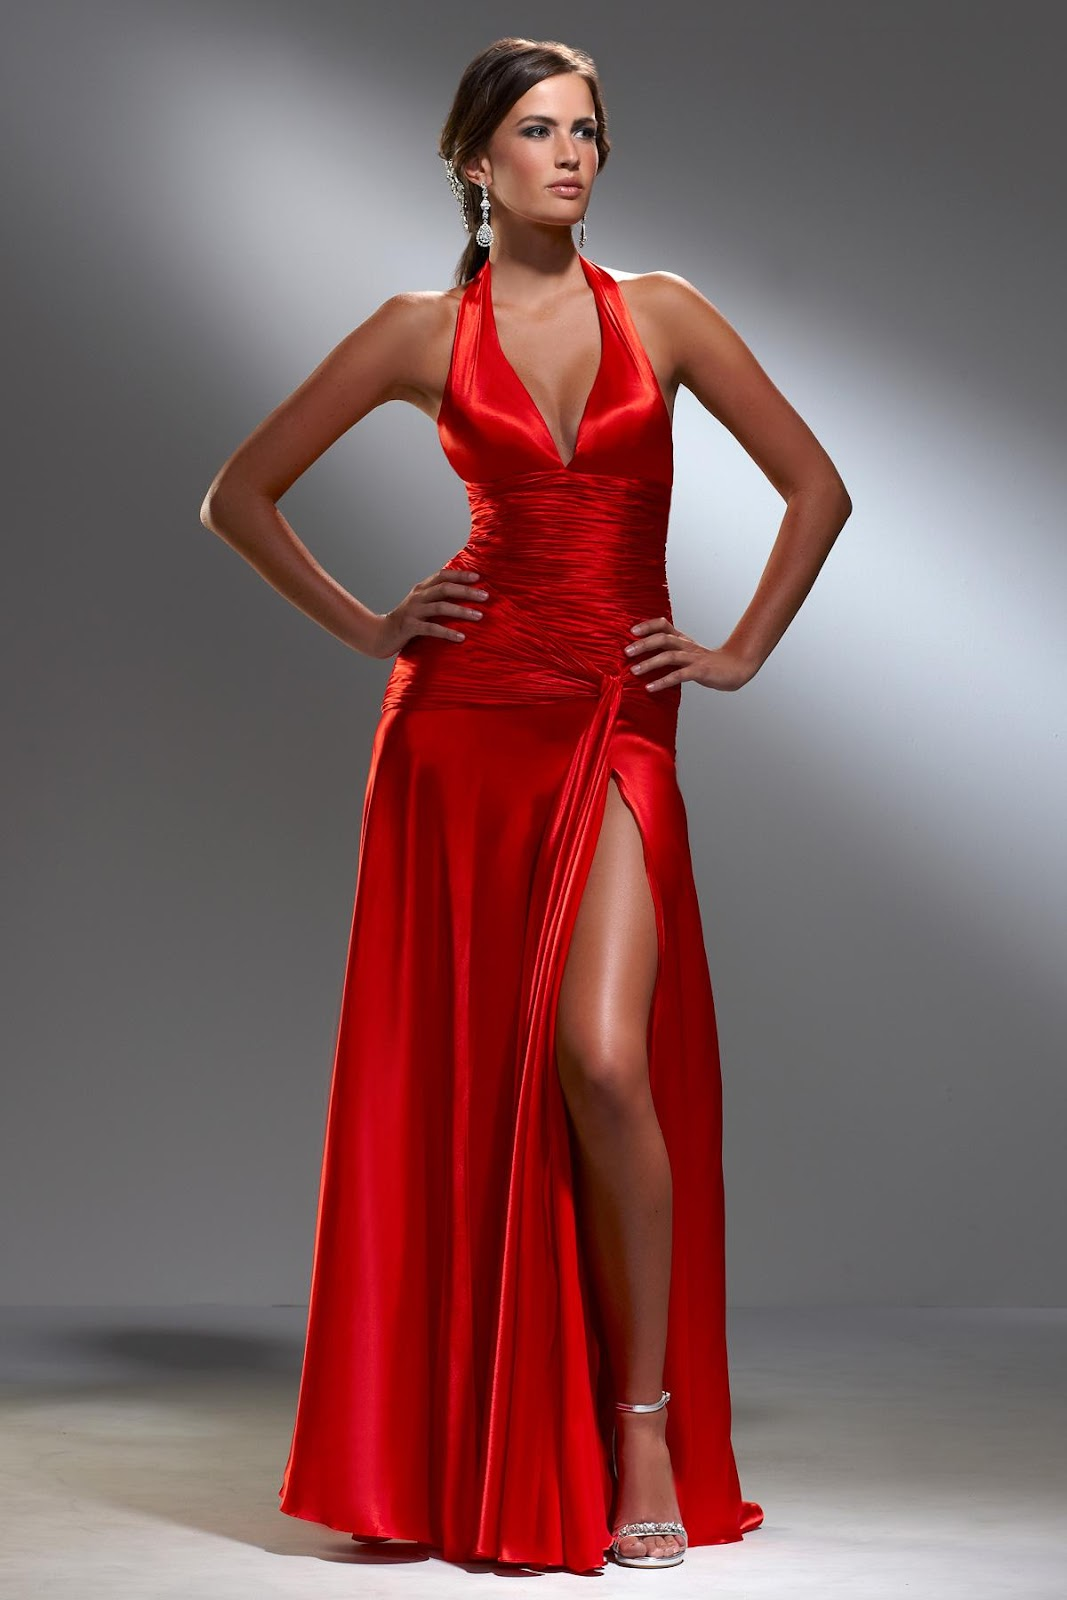 Estels blog Red Halter Evening Dresses